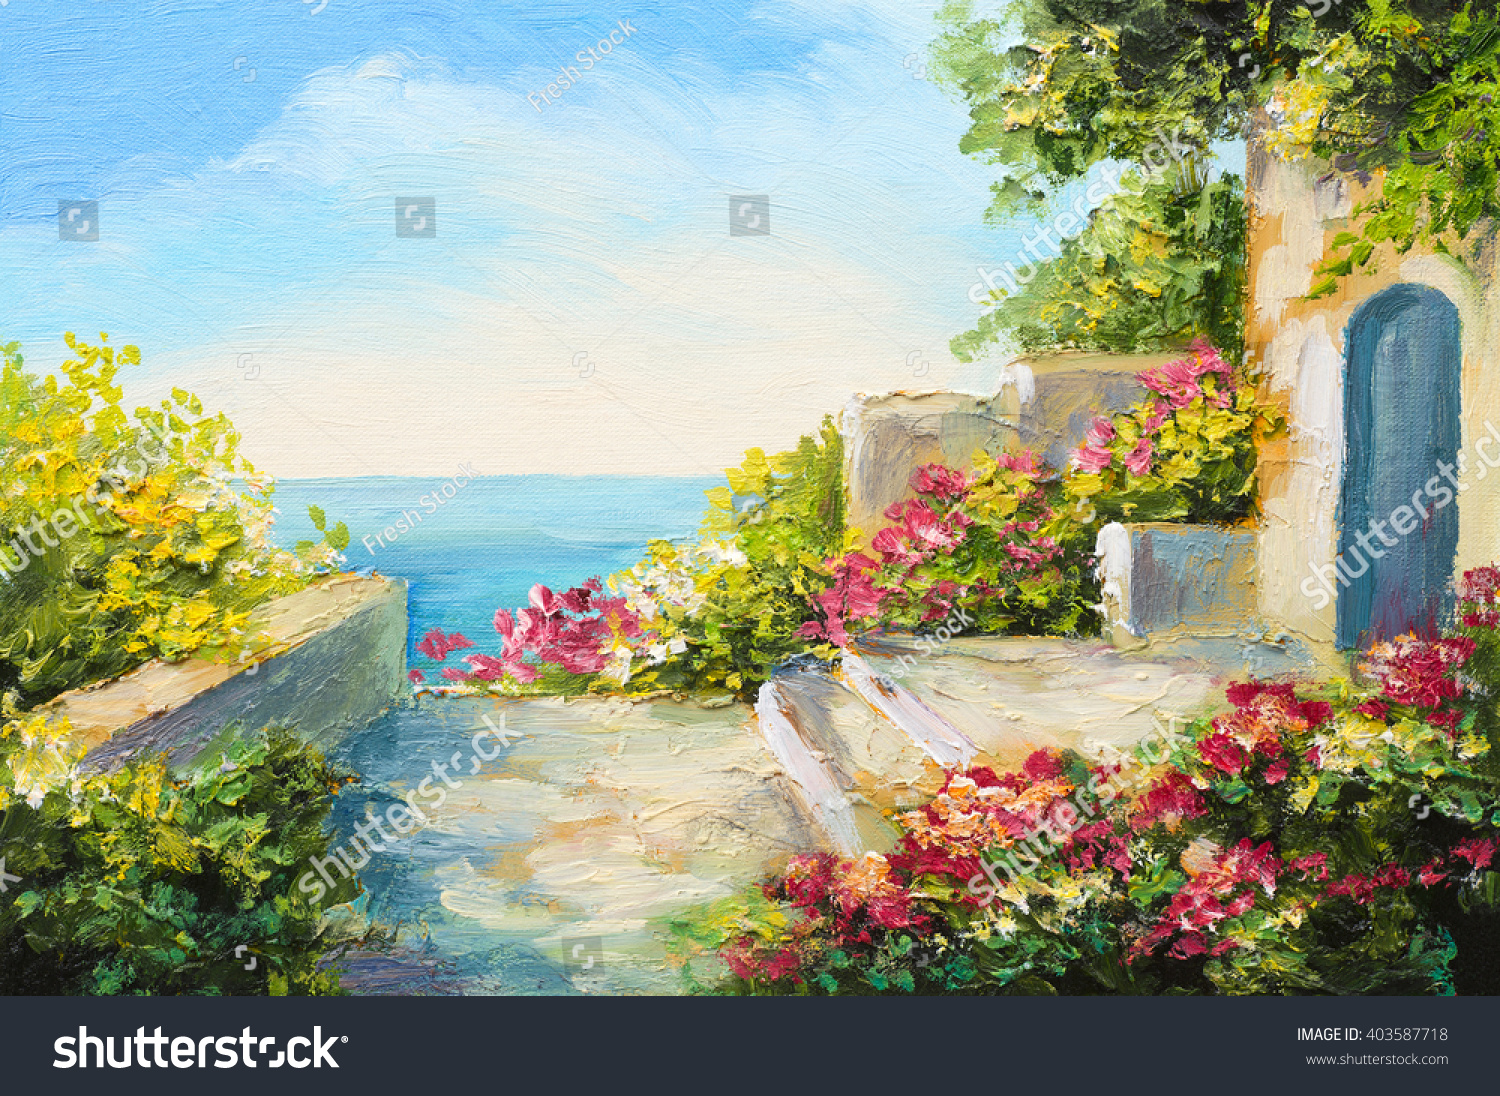 oil painting house near sea colorful stock illustration 403587718